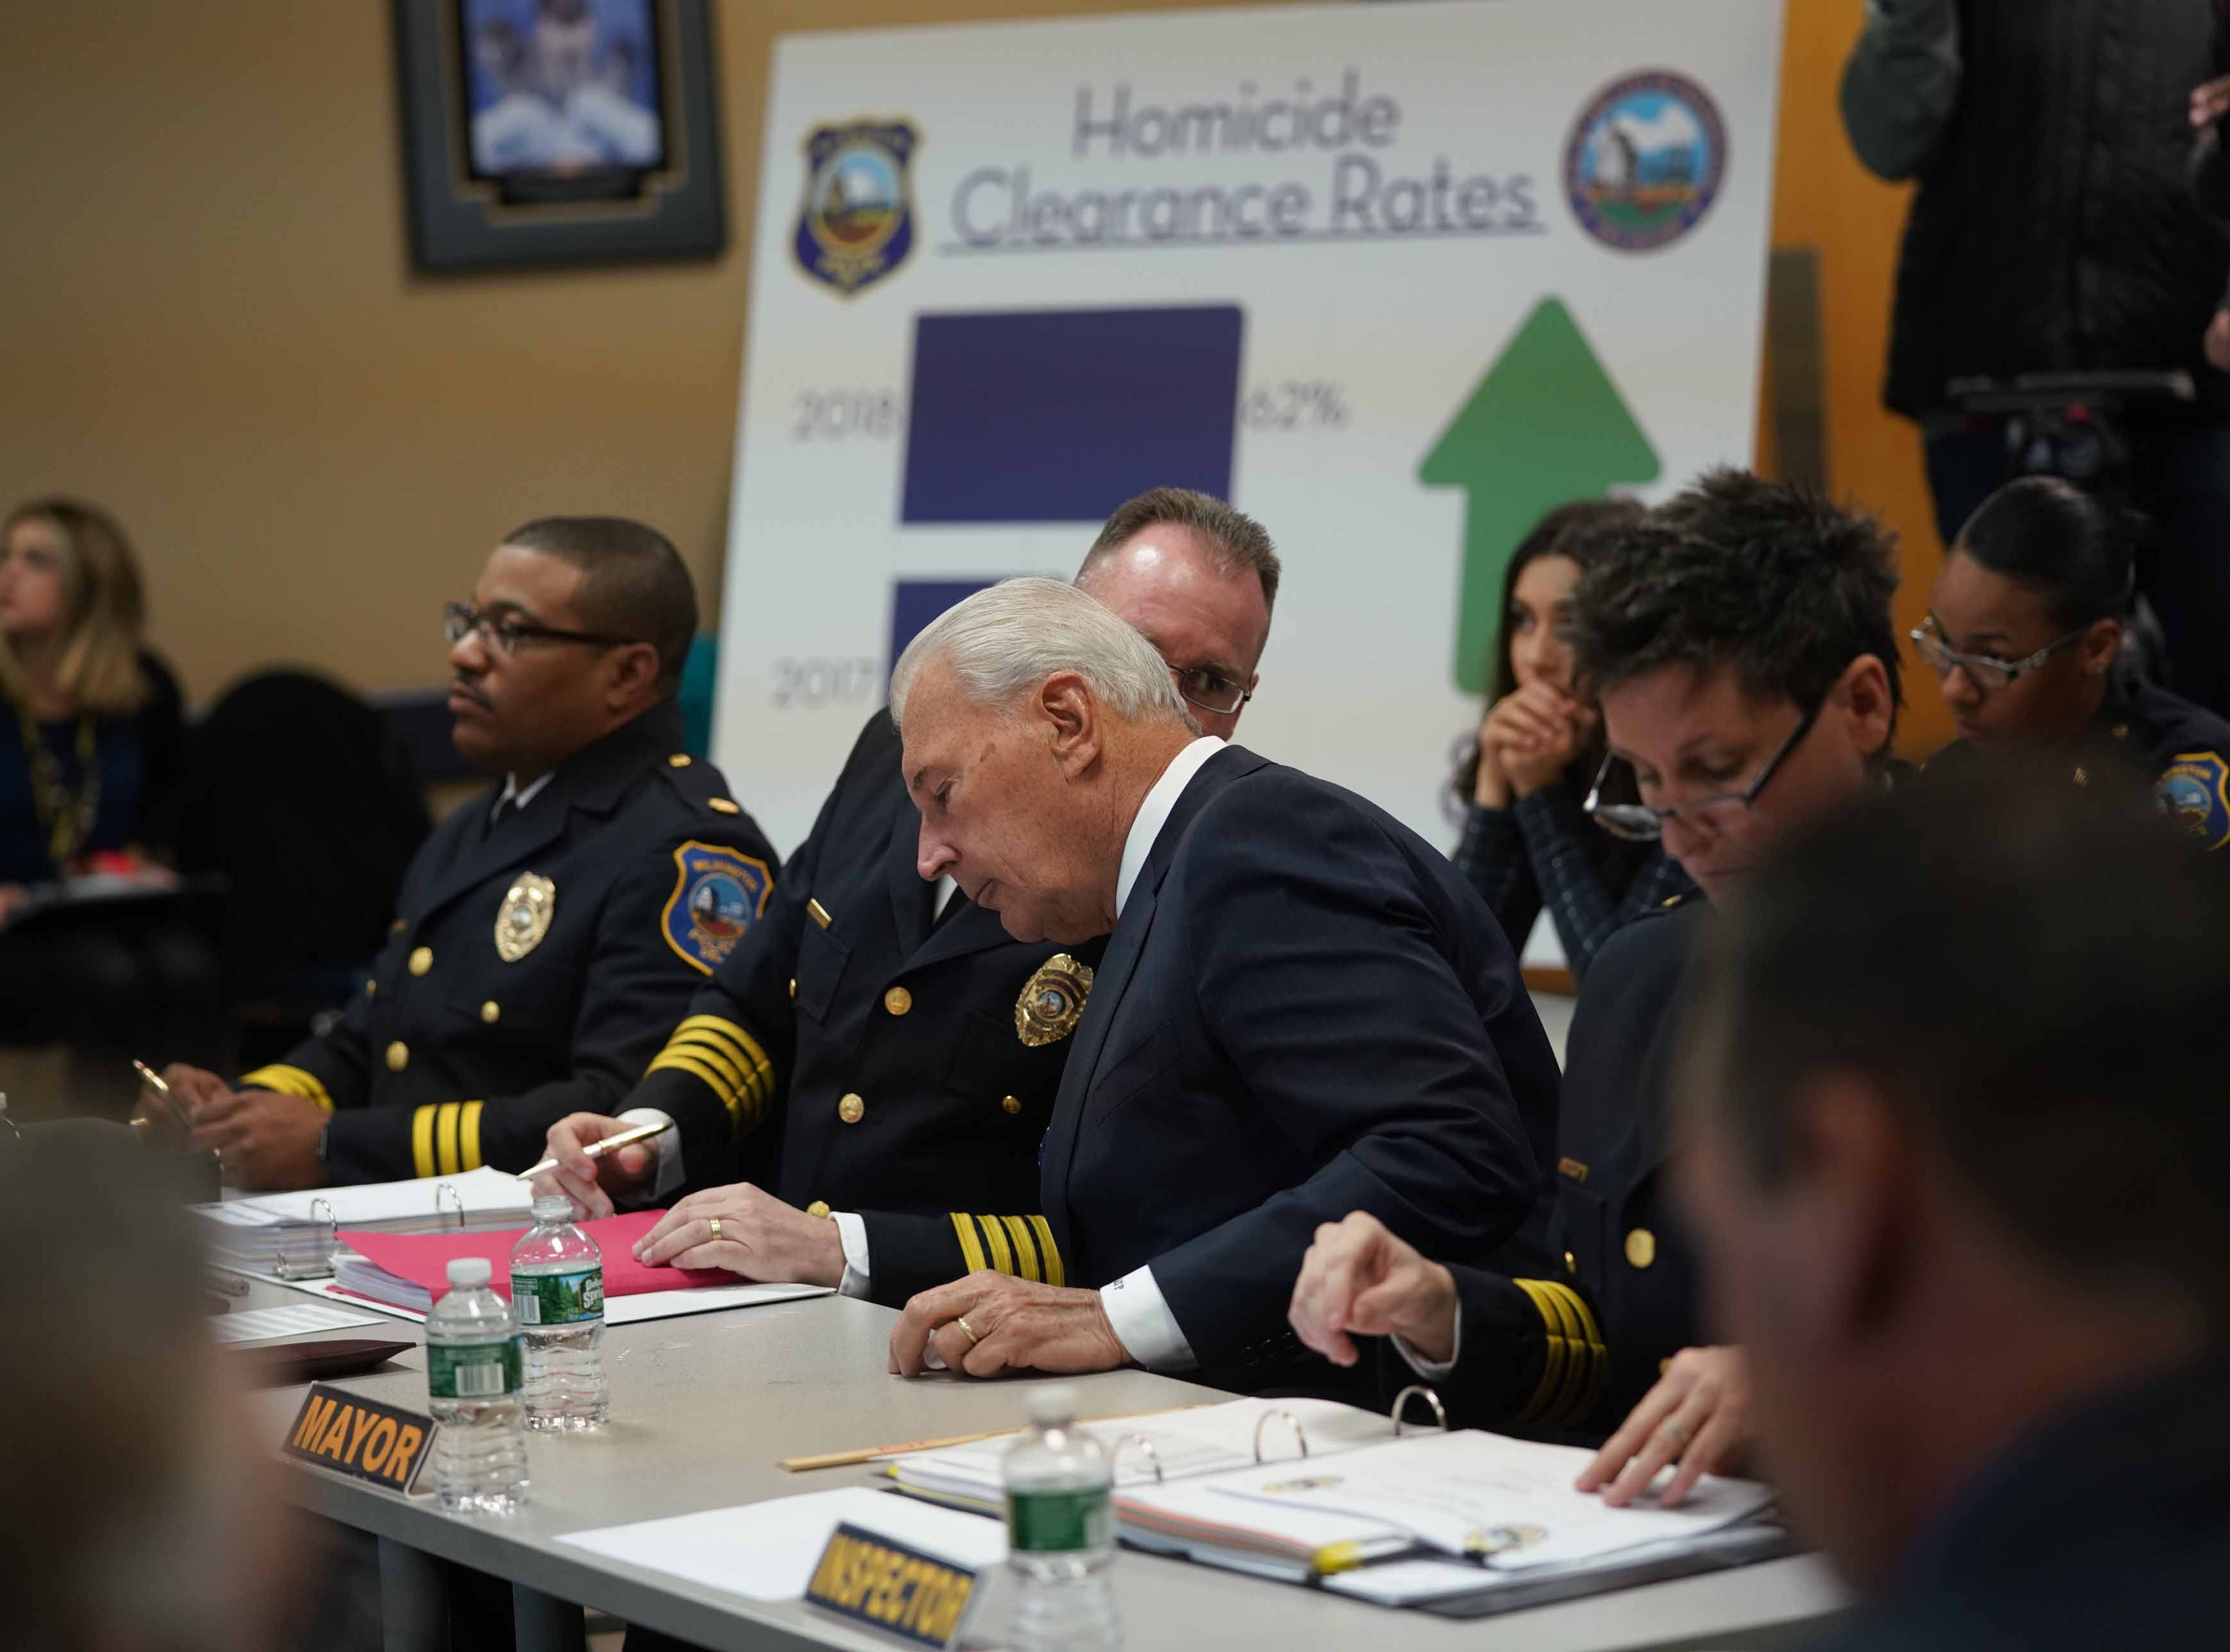 Wilmington Police Chief Robert Tracy and Wilmington Mayor Mike Purzycki converse during a meeting with staff from the police department that met to discuss the 2018 Comstat report that indicated a reduction in crime.